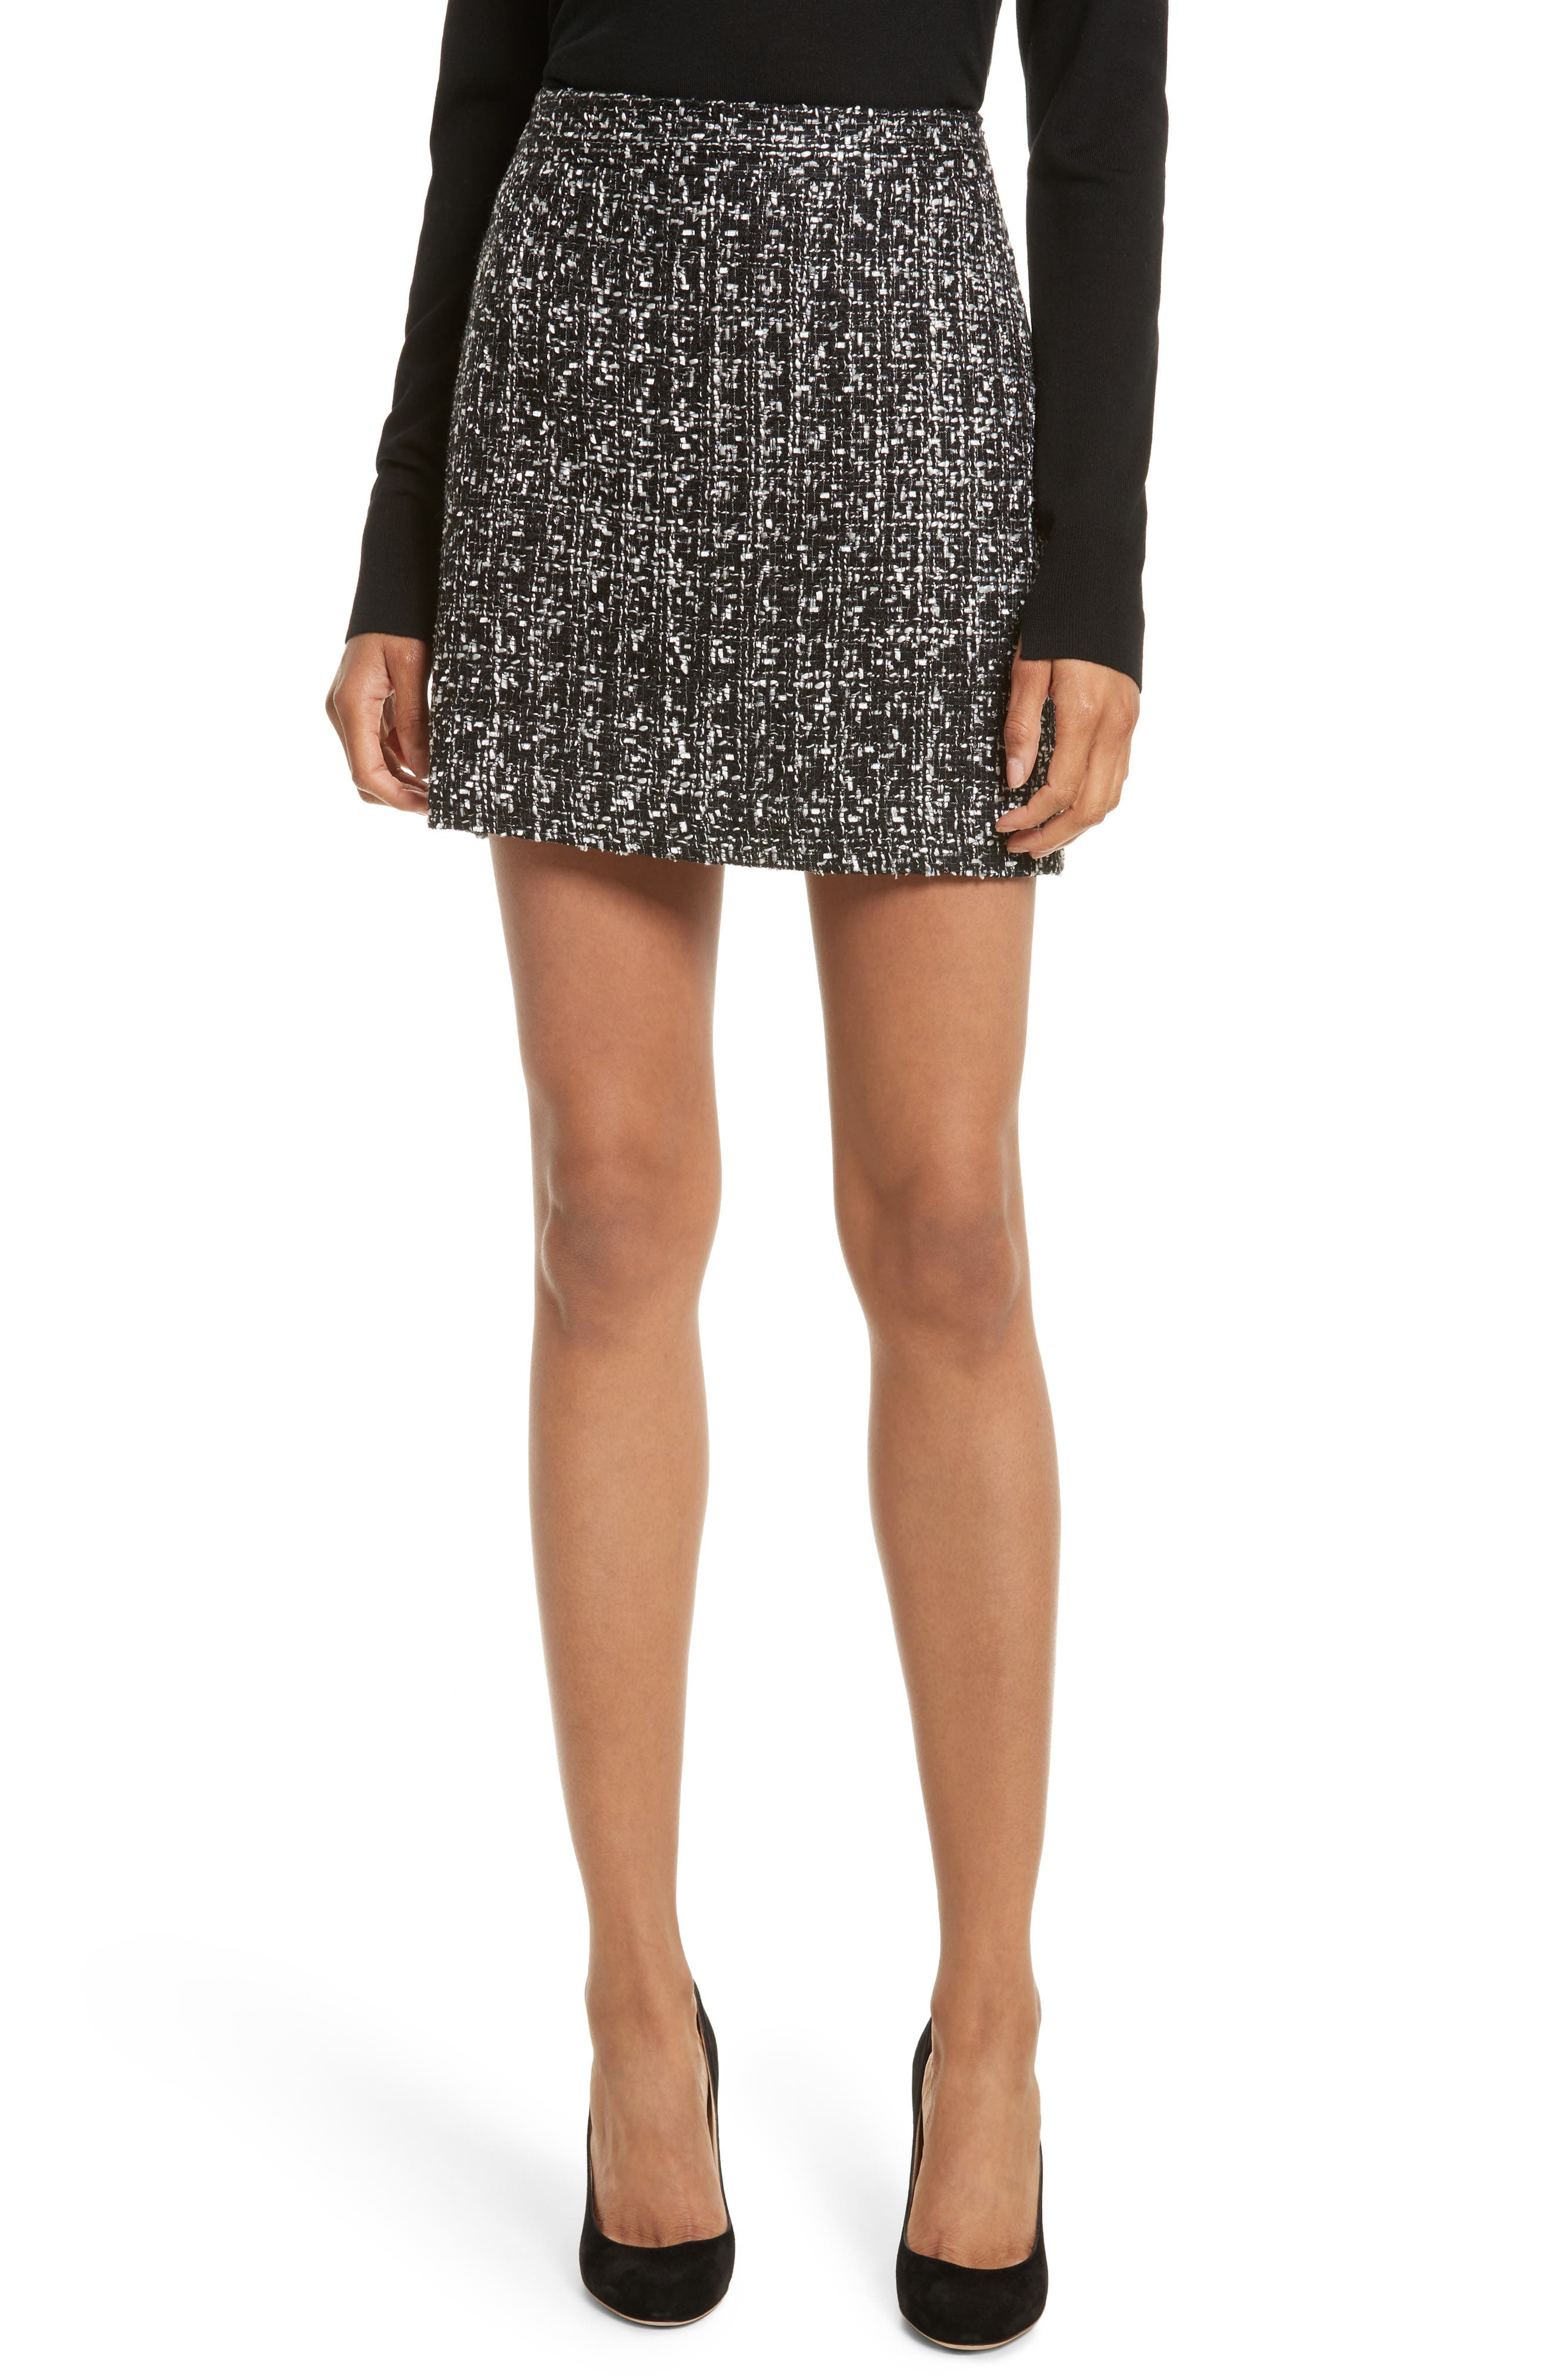 Mini Skirts: A-Line, Pencil, Maxi, Miniskirts & More | Nordstrom